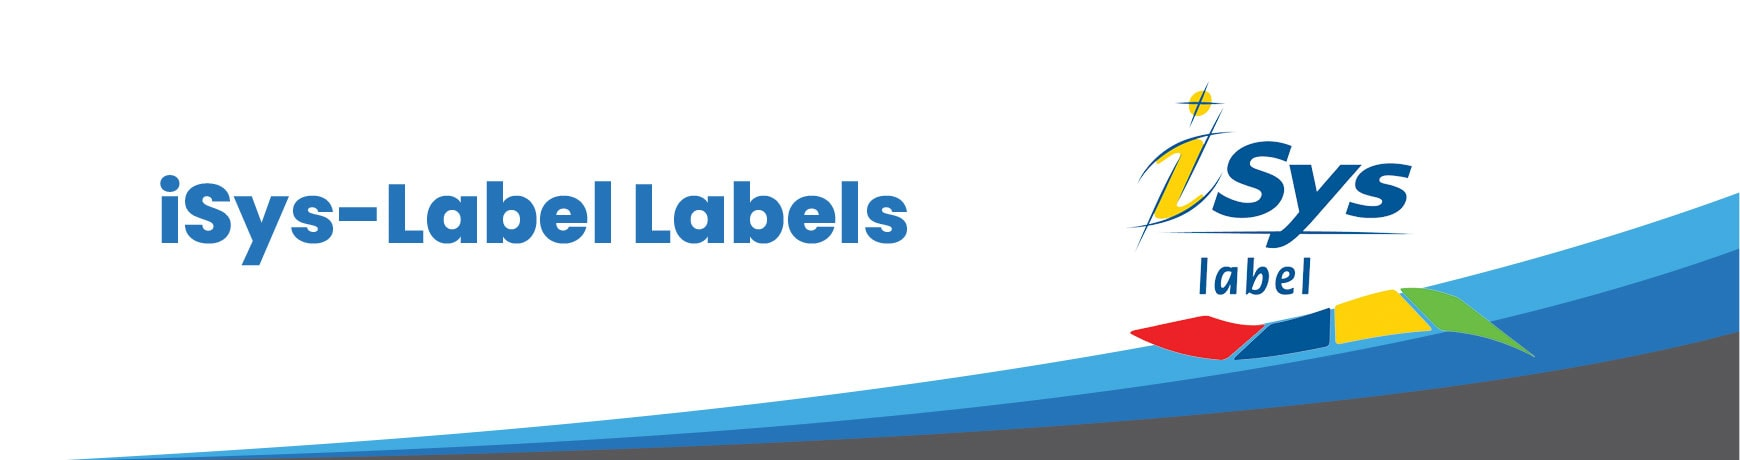 iSys-Label Labels